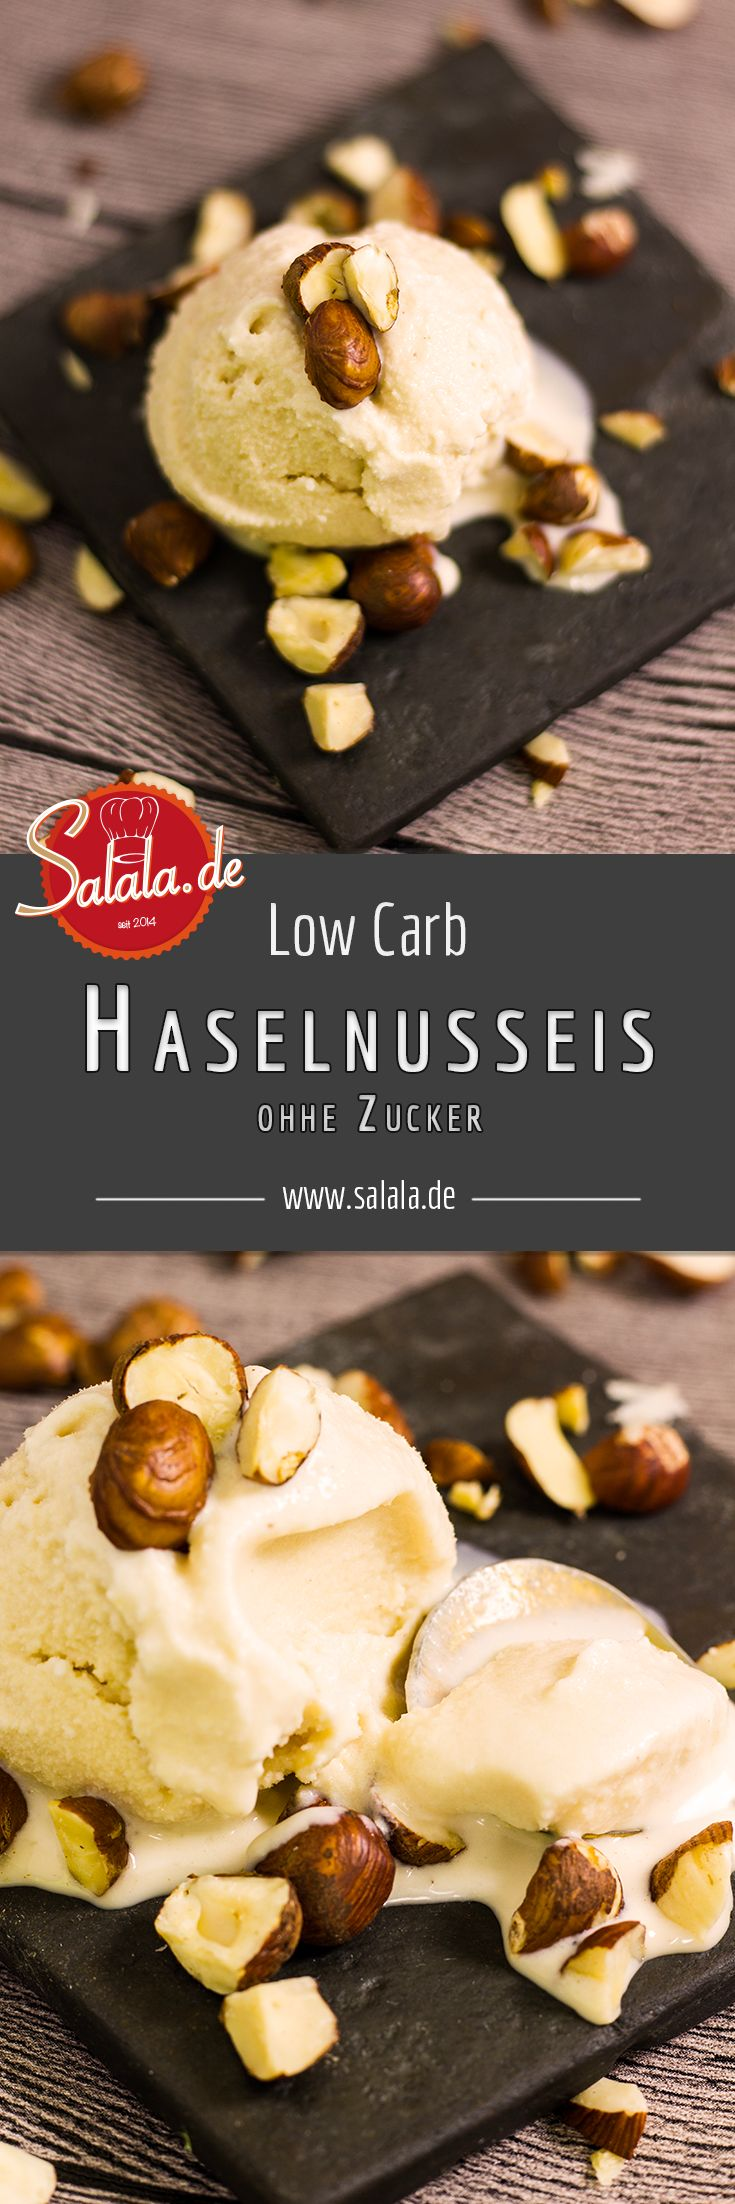 Low Carb Haselnusseis ohne Zucker